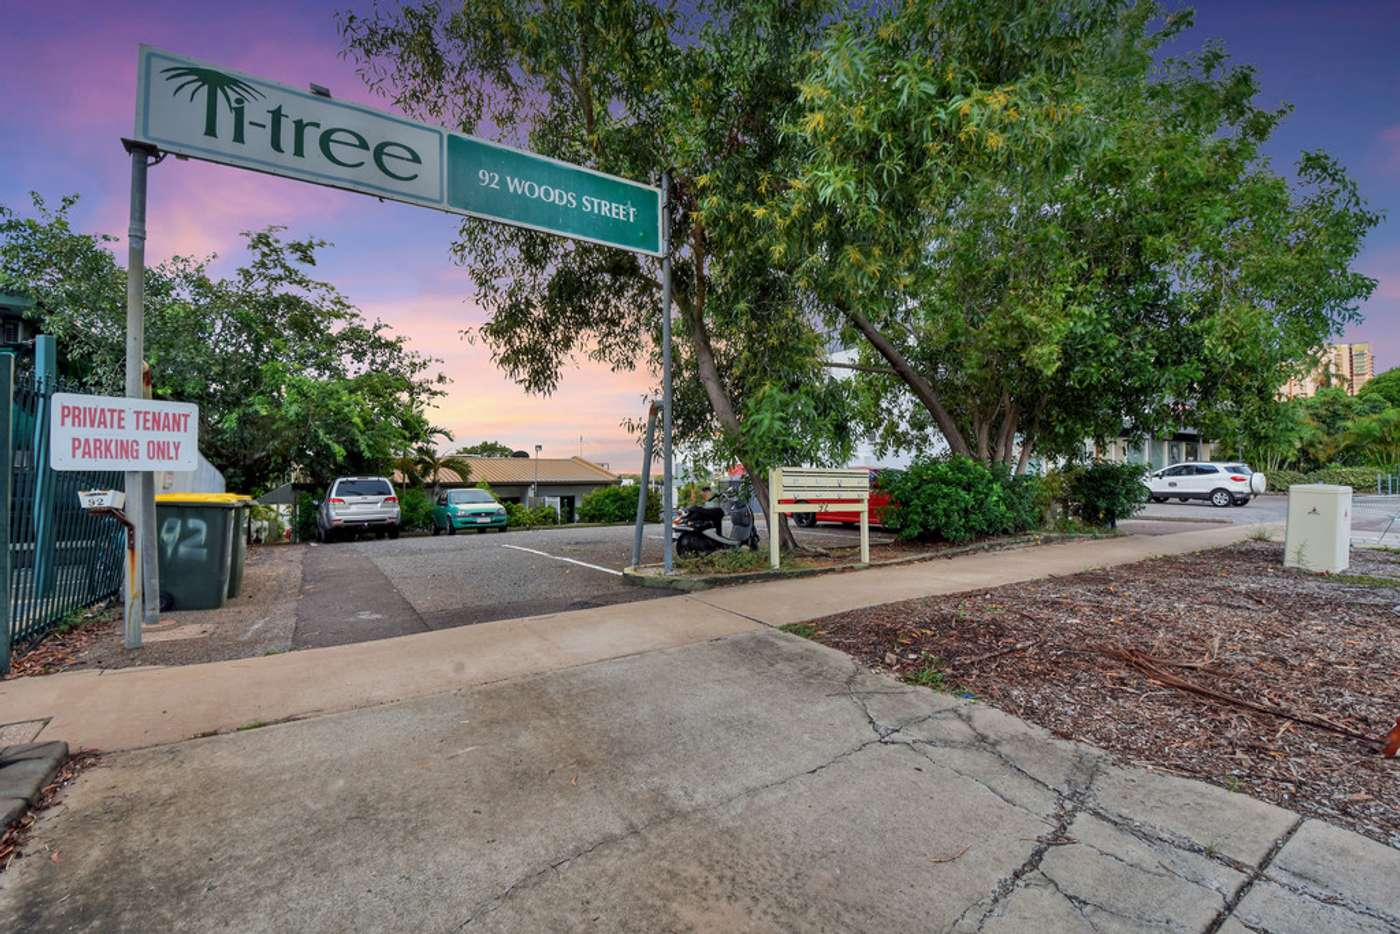 Main view of Homely blockOfUnits listing, 92 Woods Street, Darwin City NT 800